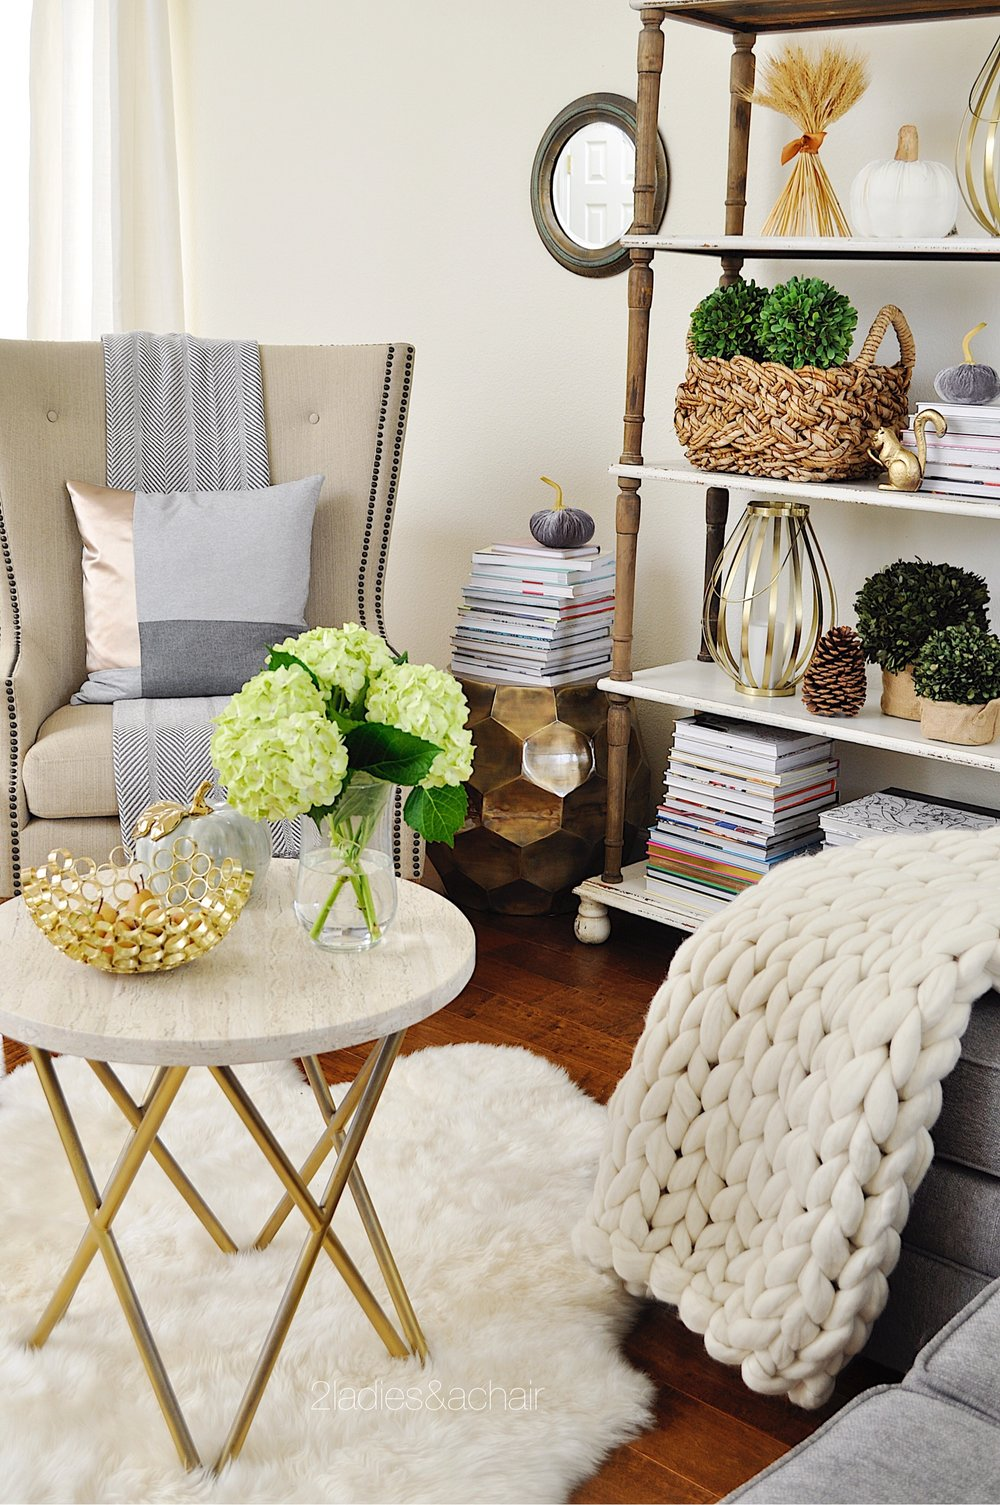 neutral living room decor ideas for fall img_8058jpg - Neutral Living Room